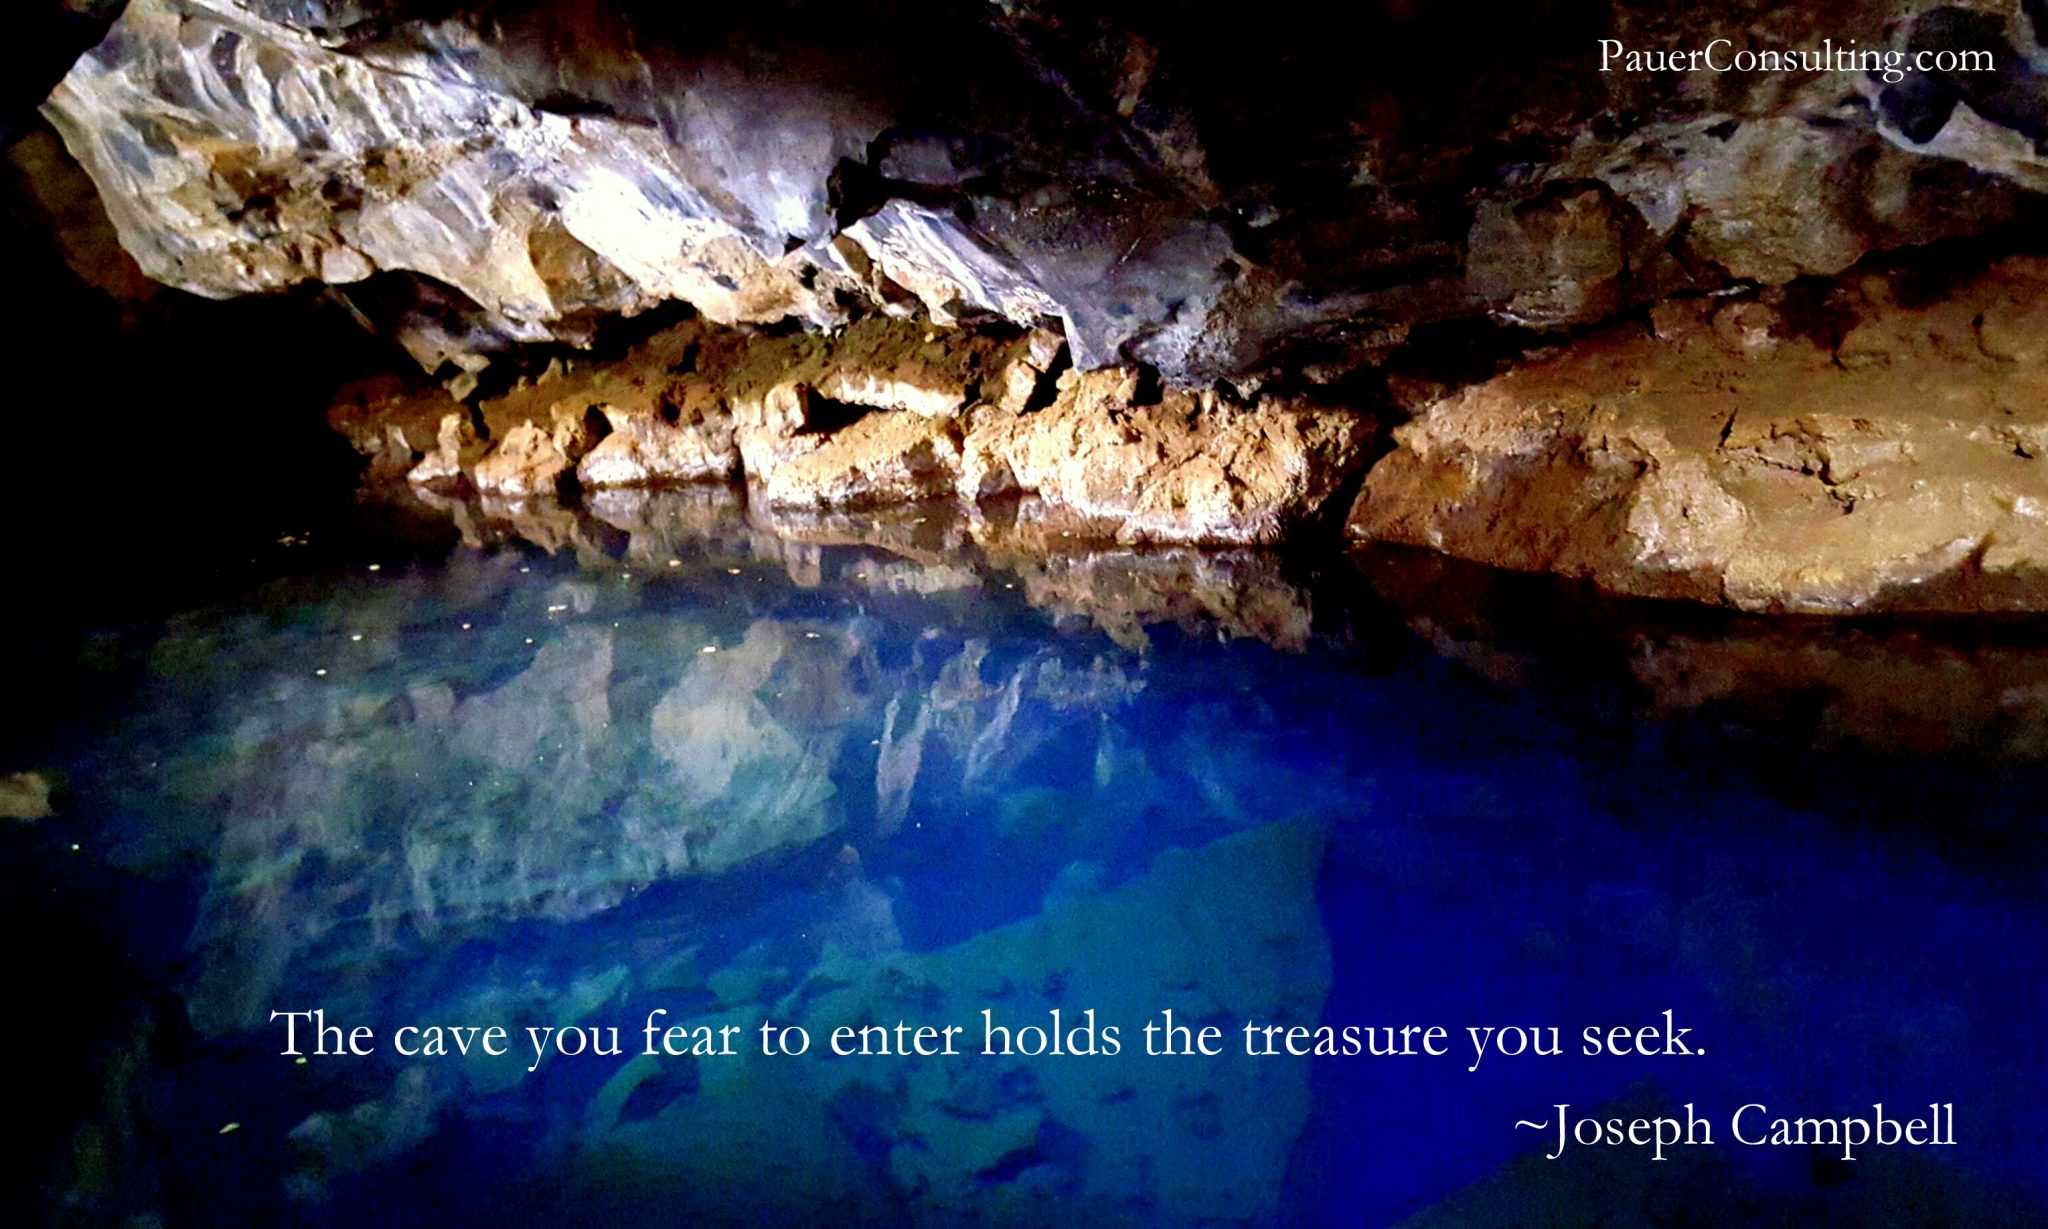 [Image] The cave you fear to enter holds the treasure you seek.